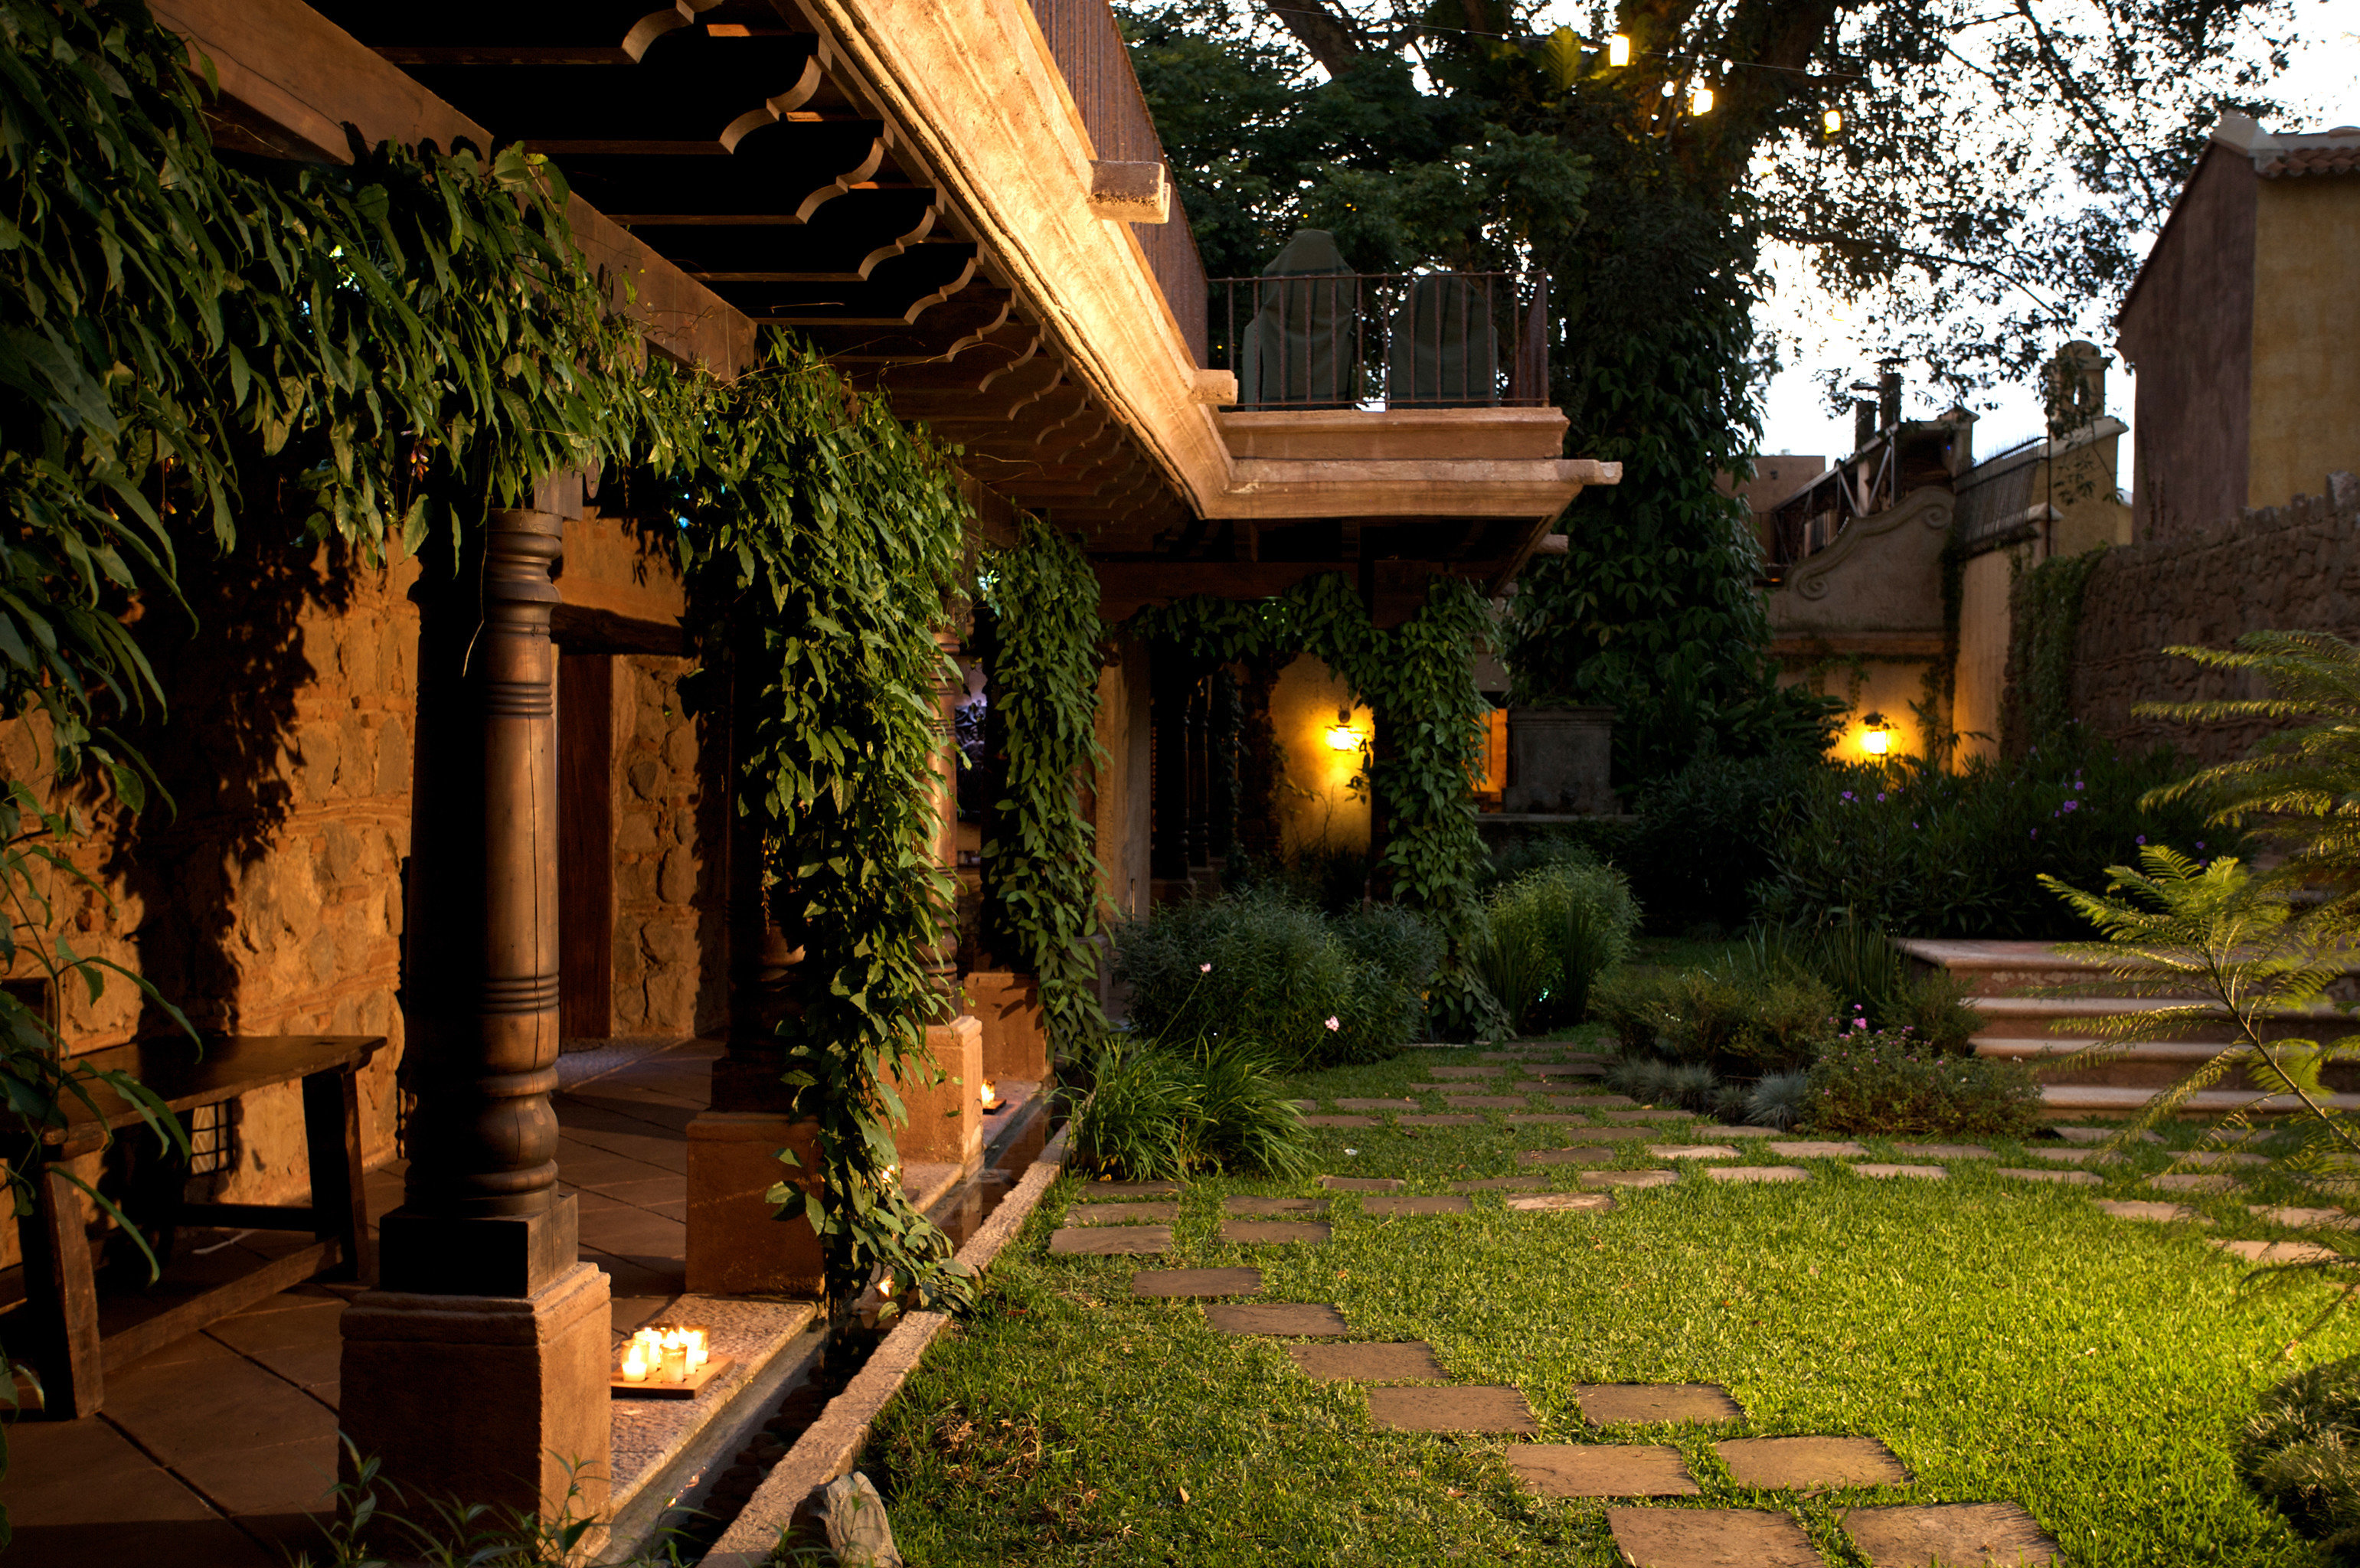 Architecture Buildings Exterior Grounds Patio tree grass property house Courtyard landscape lighting sidewalk street home backyard yard lighting mansion Garden screenshot Villa cottage outdoor structure plant residential stone curb